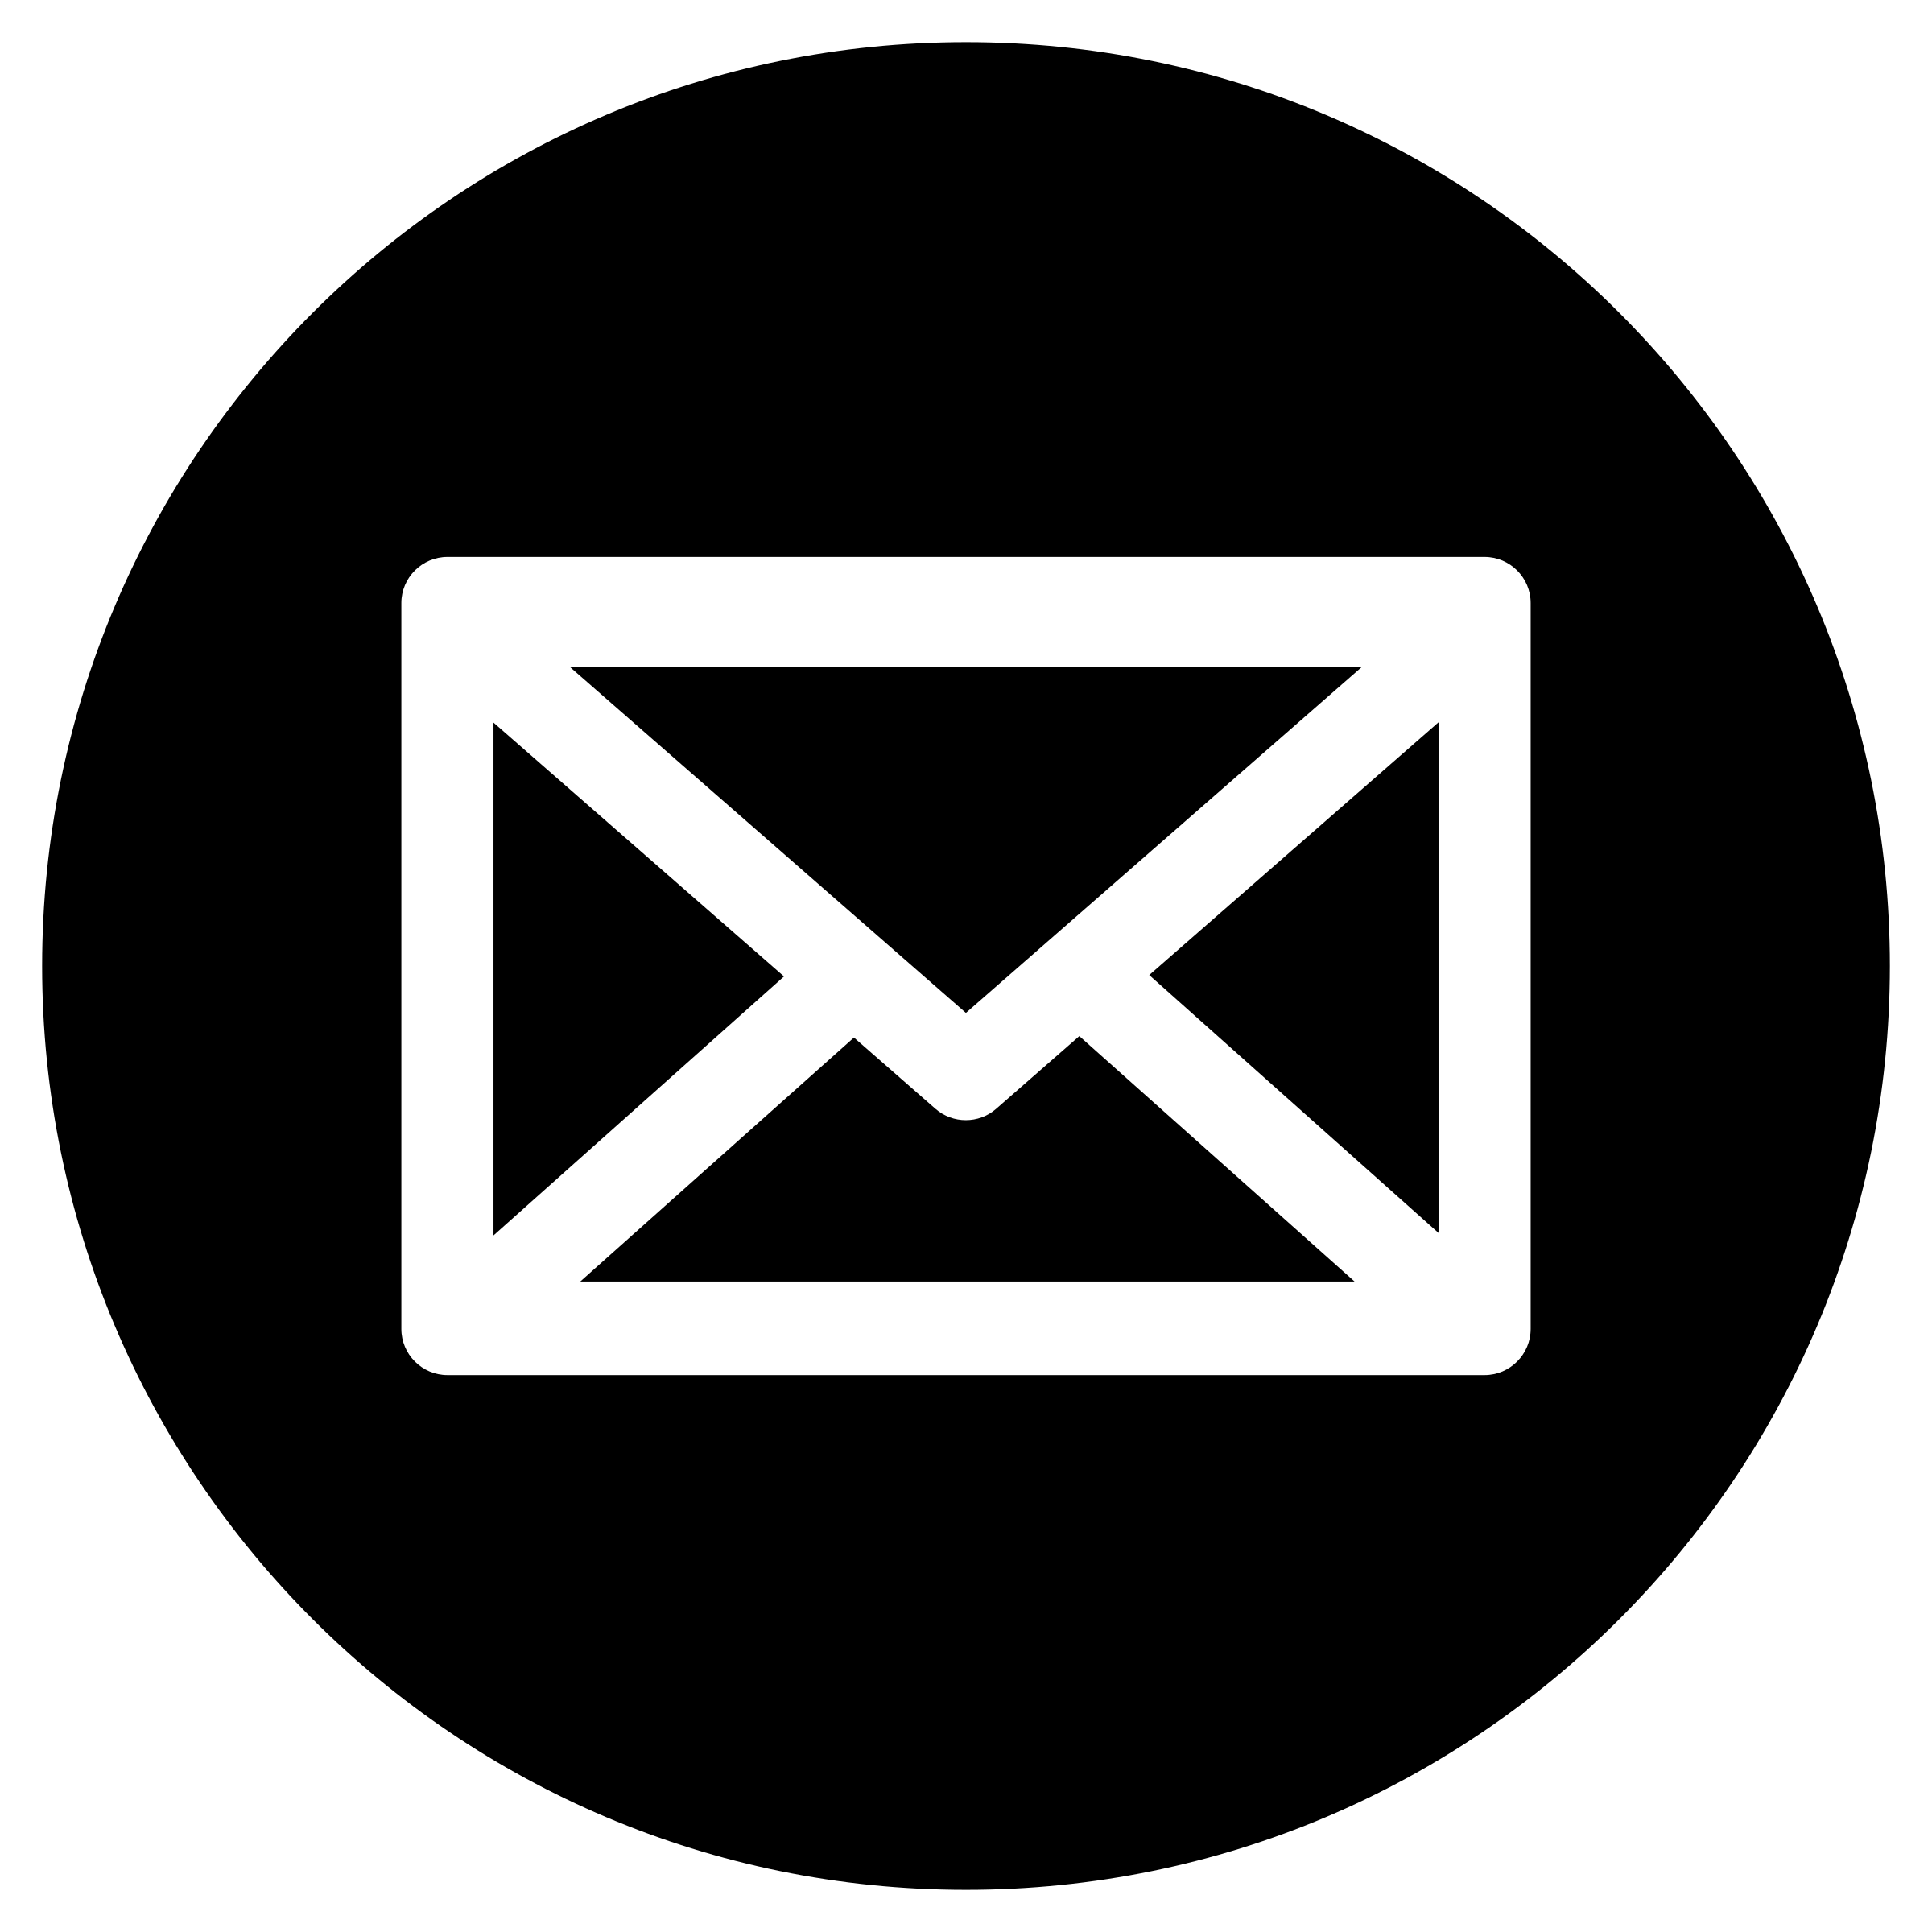 Mail to logo in black and white